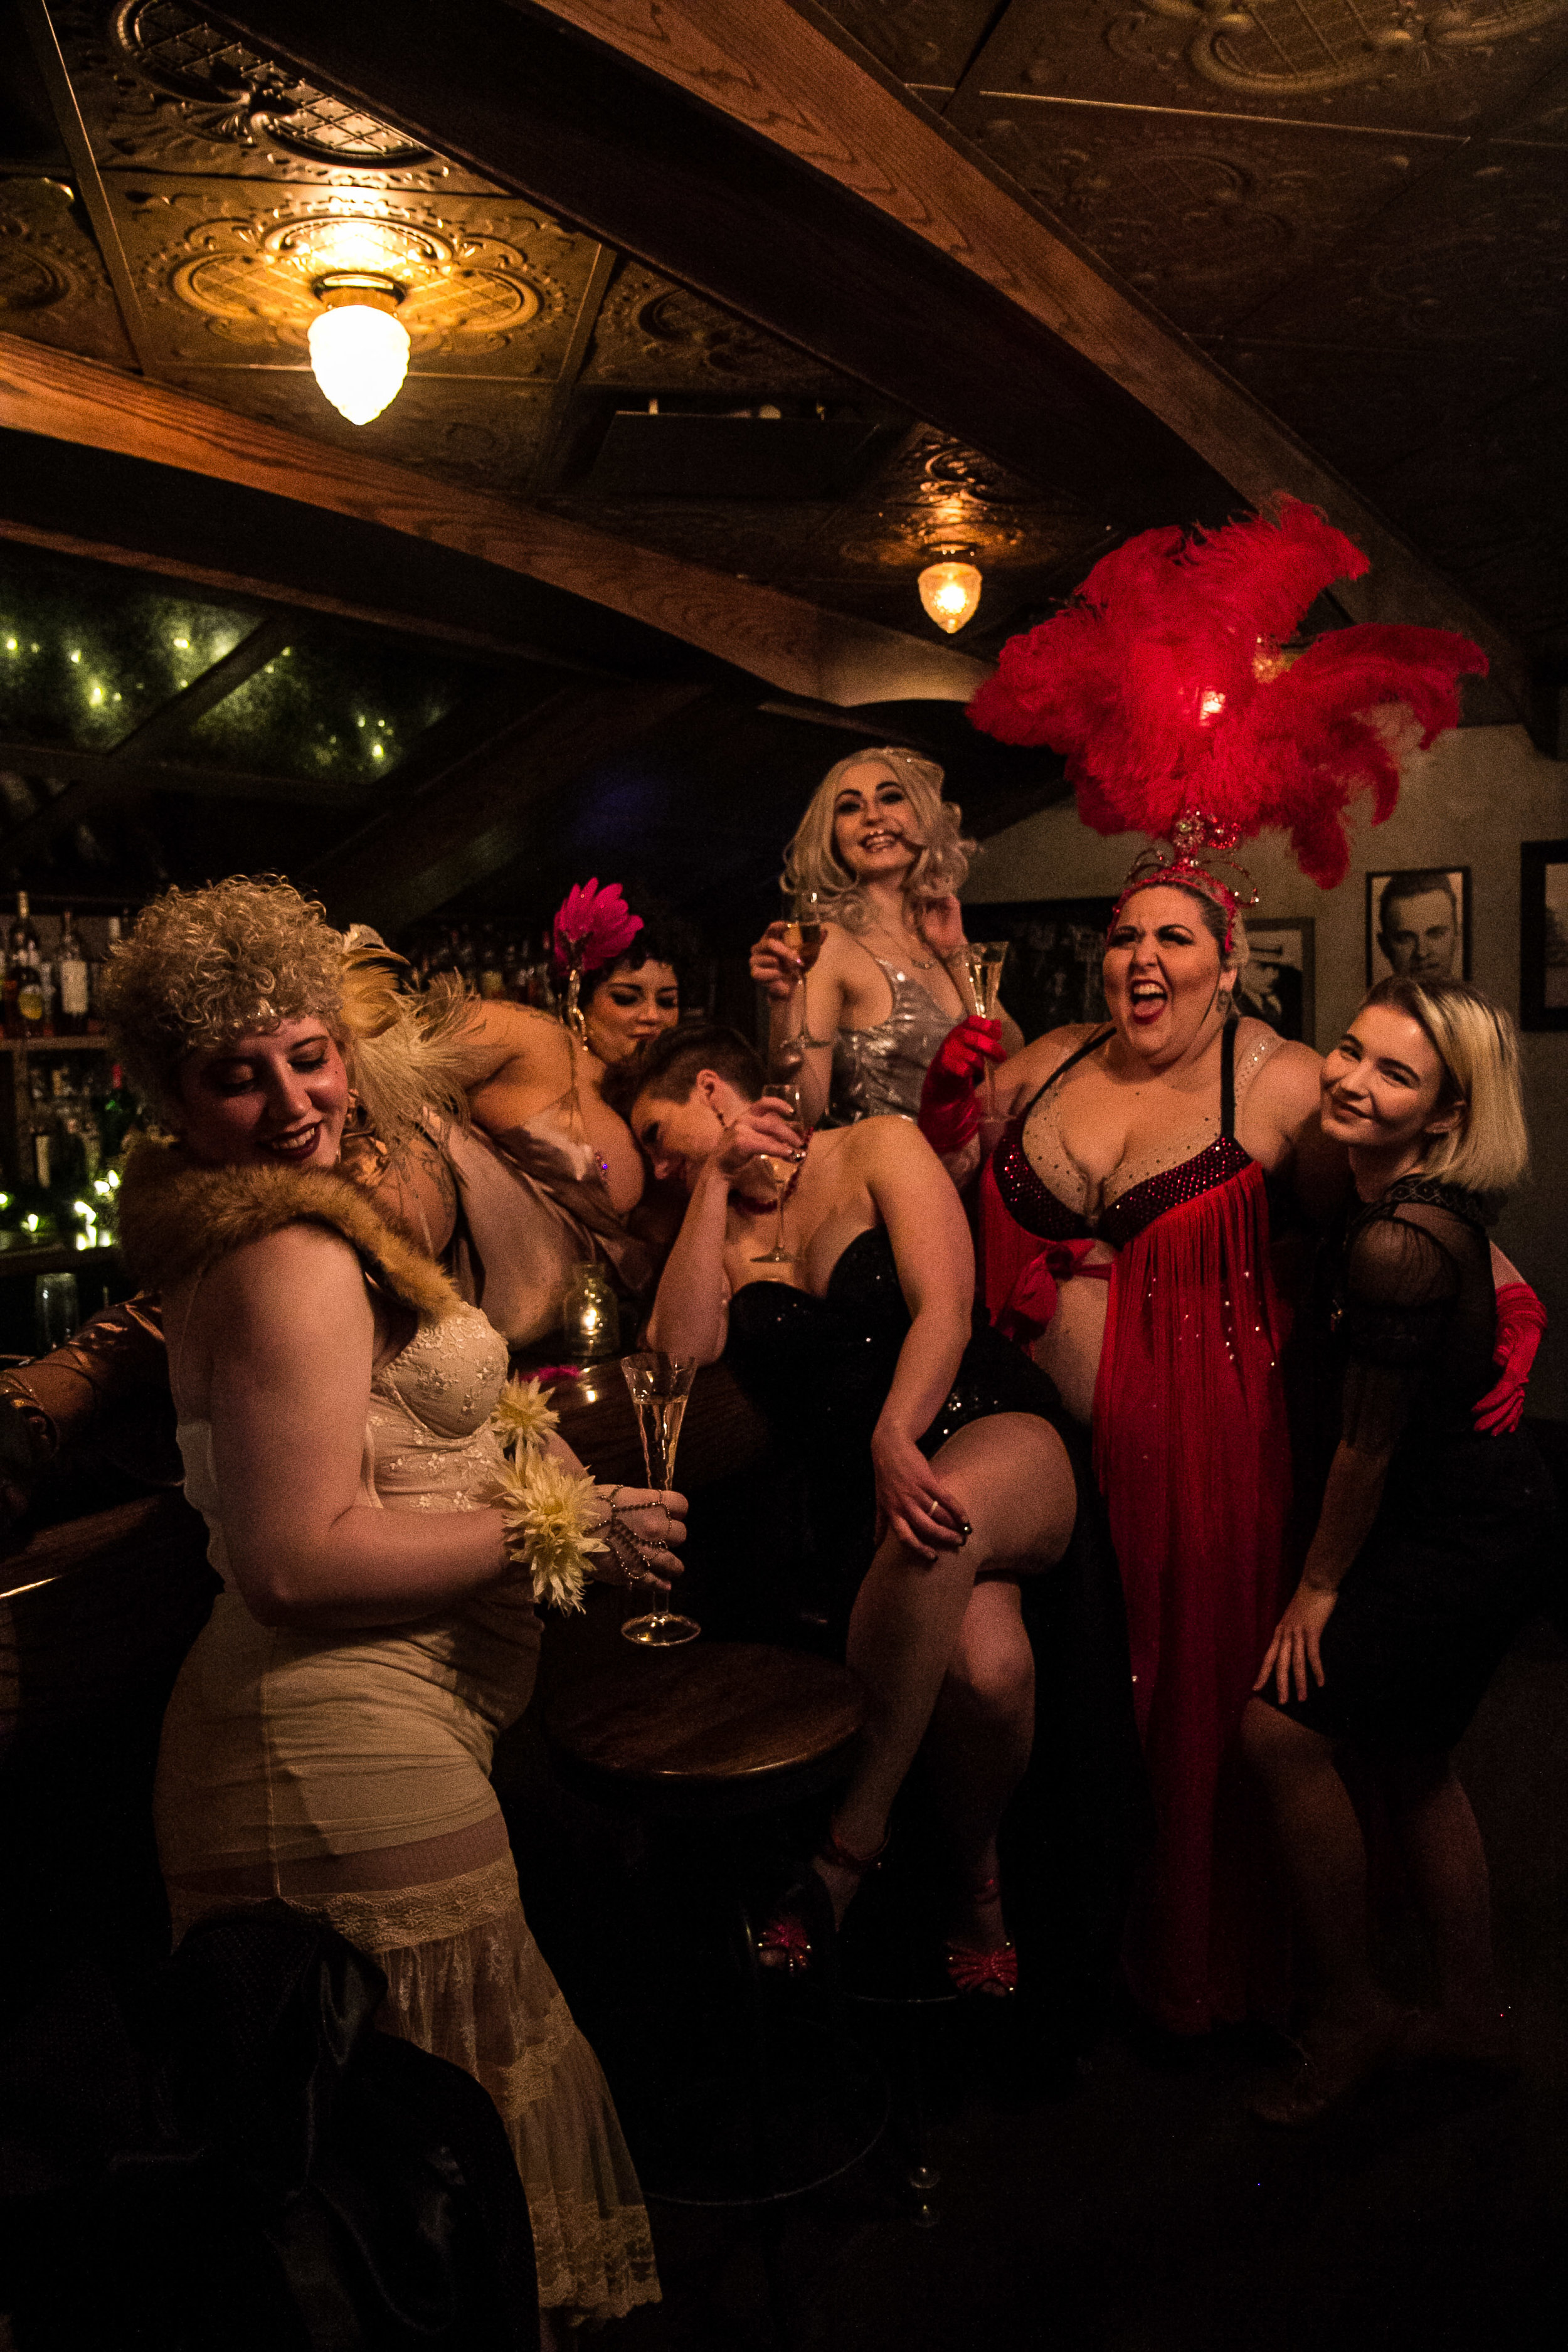 Al's Gal's Burlesque Brunch - Click Image For Details + Dates